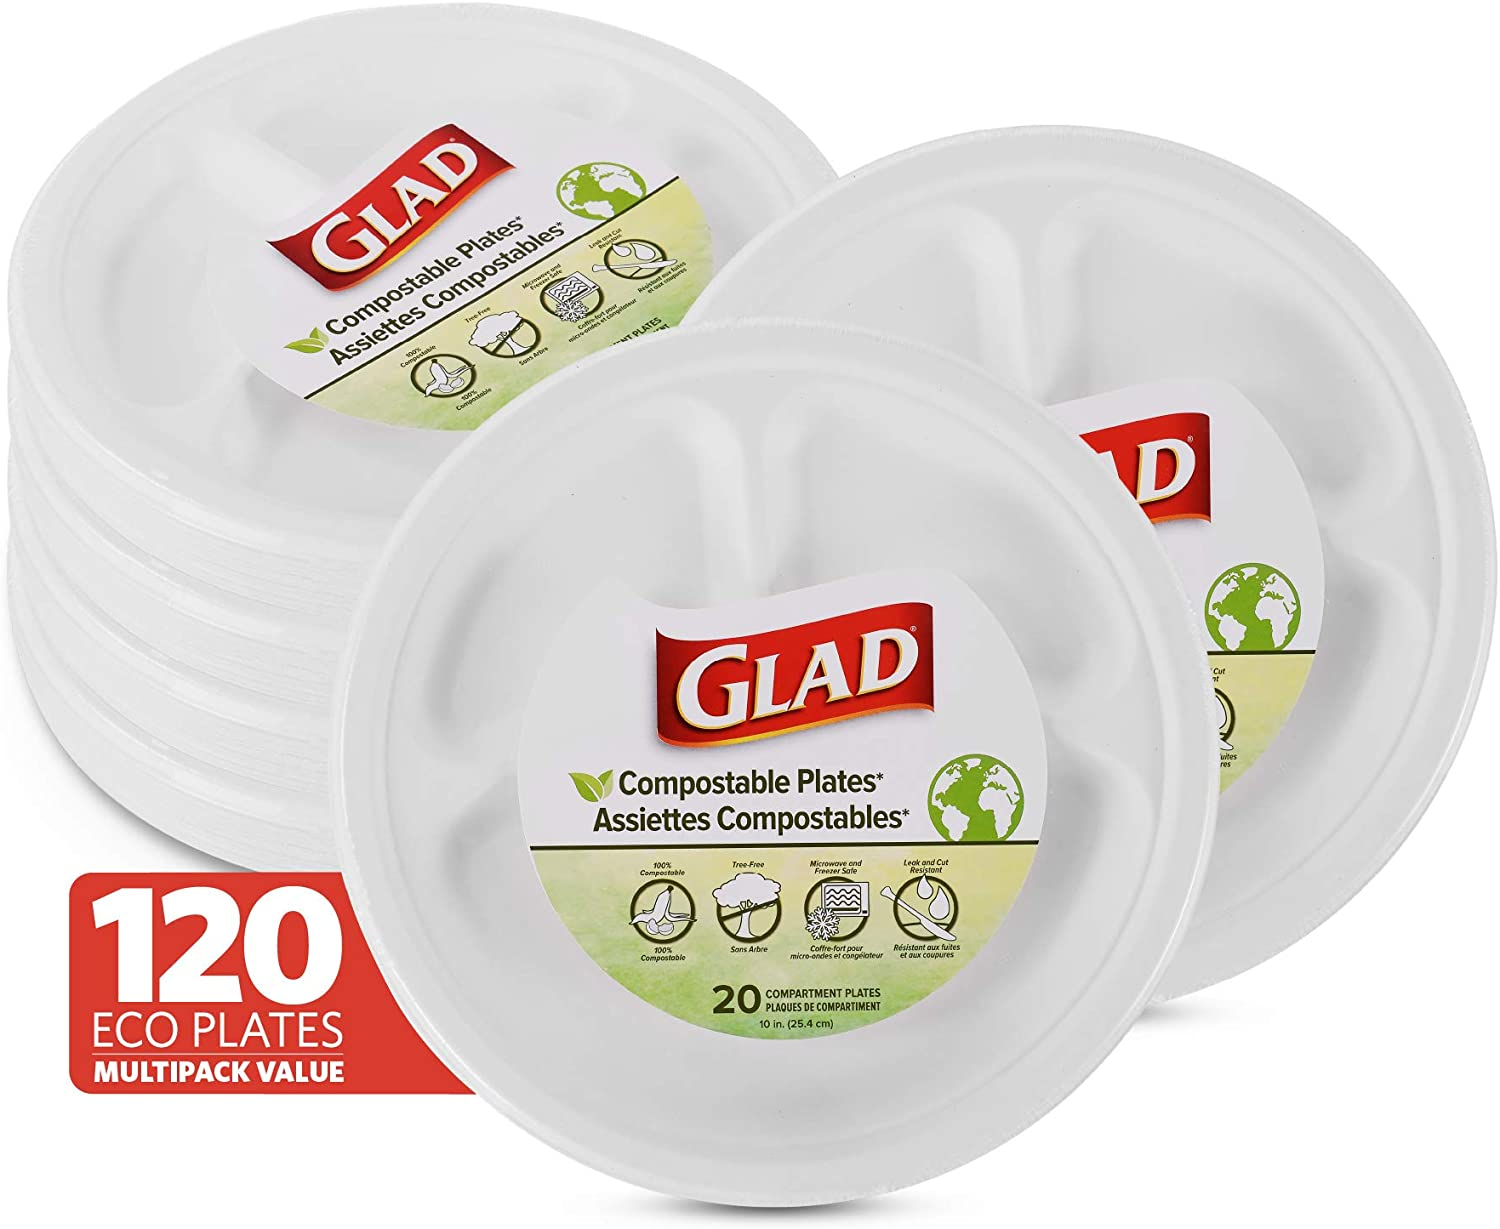 Glad Compostable Paper Plates 10-in with Dividers Sugarcane Disposable Plates (Microwavable & Freezer Safe/Cut-Resistant Eco-Friendly Plates), 6 Pack, Compartment Plates, 120 Count